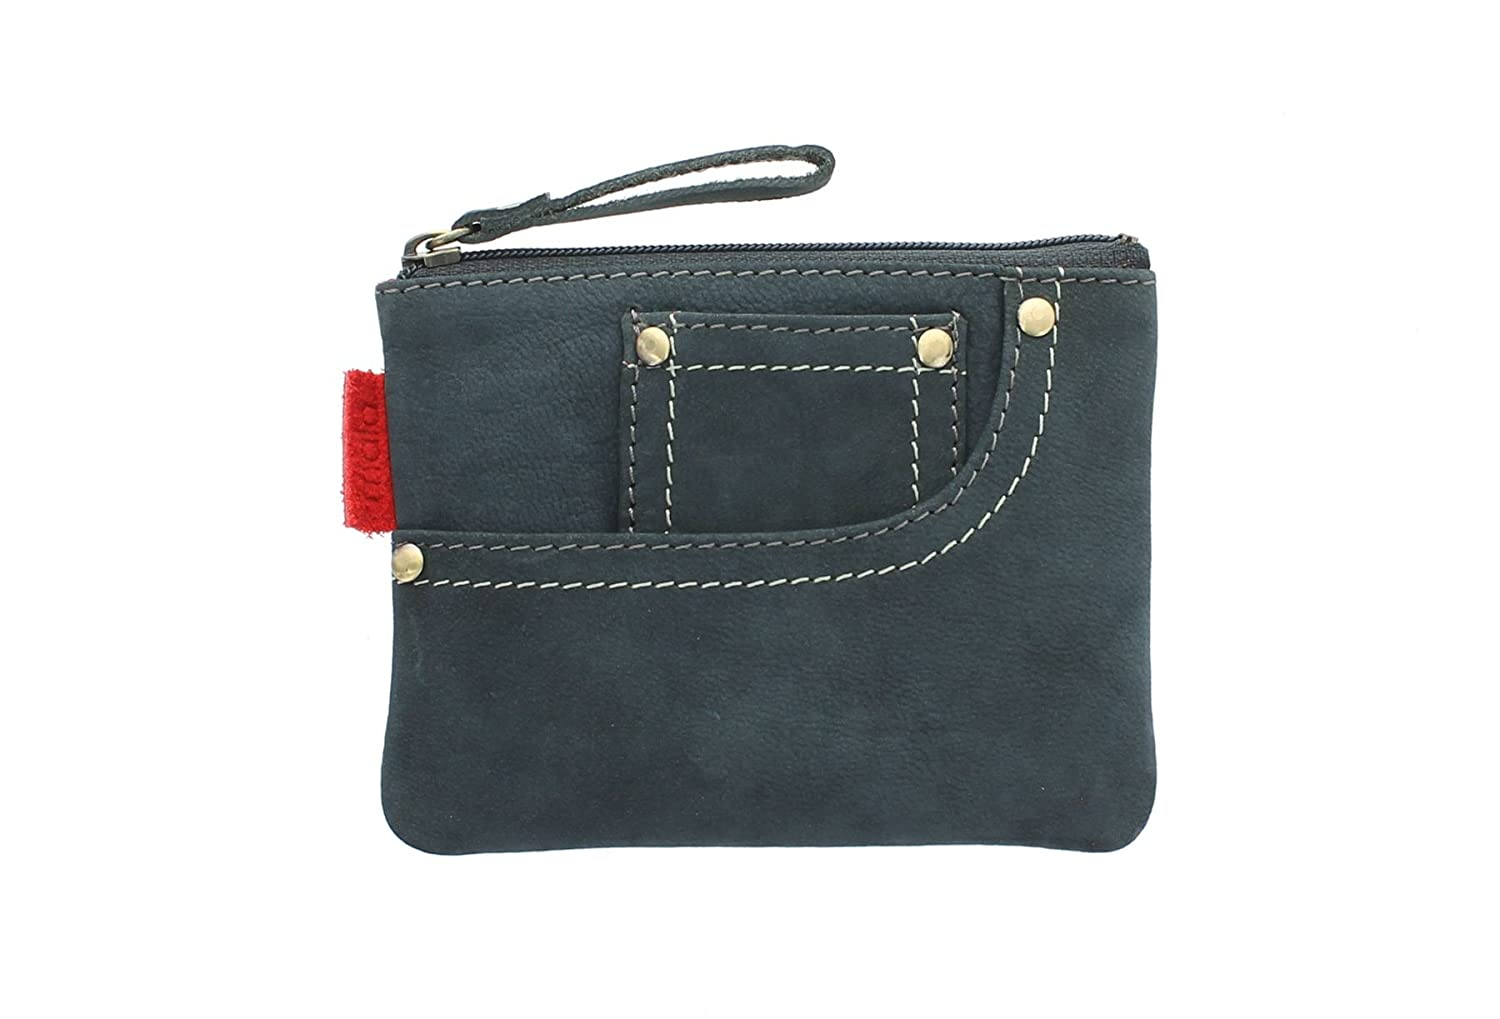 Mala Leather JEANS FRONT POCKET Leather Coin Purse 4128/_11